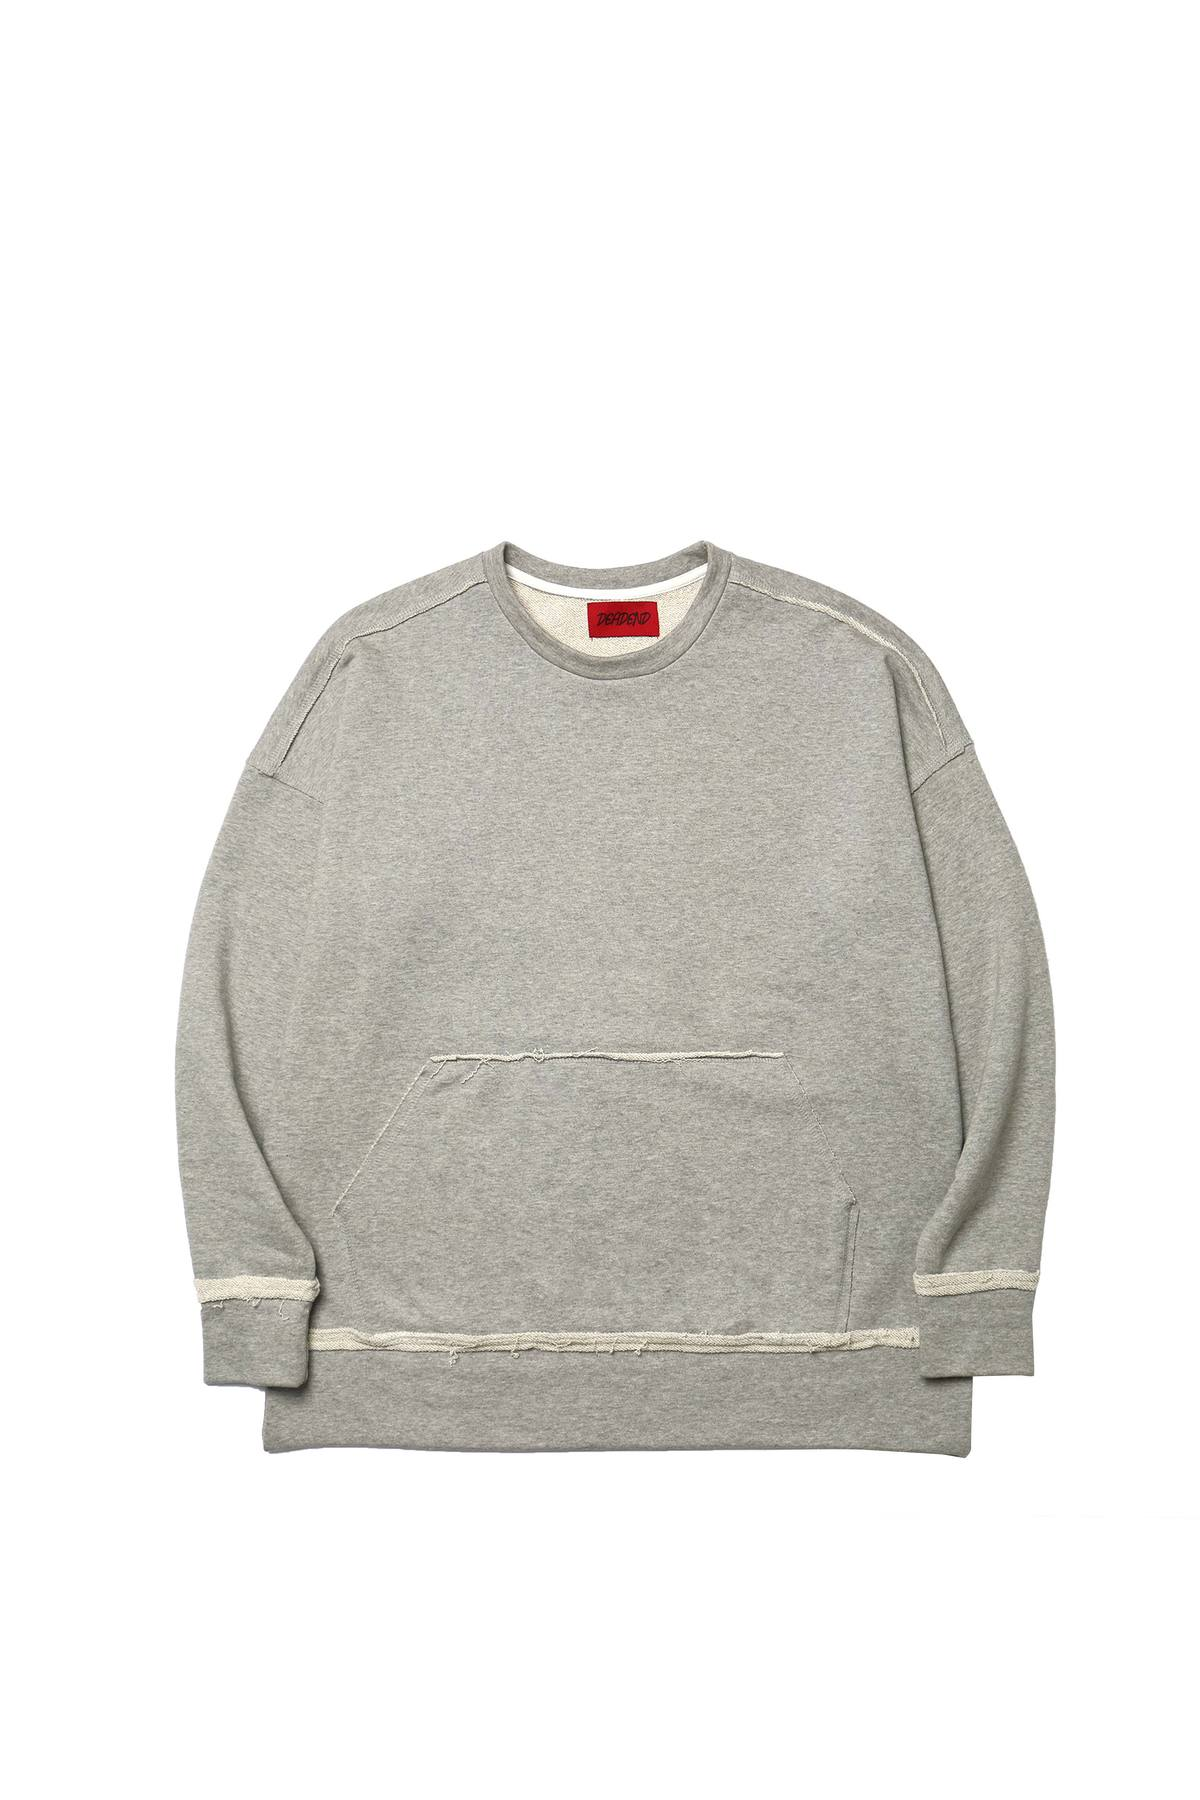 GREY RAW EDGE SWEAT SHIRTS